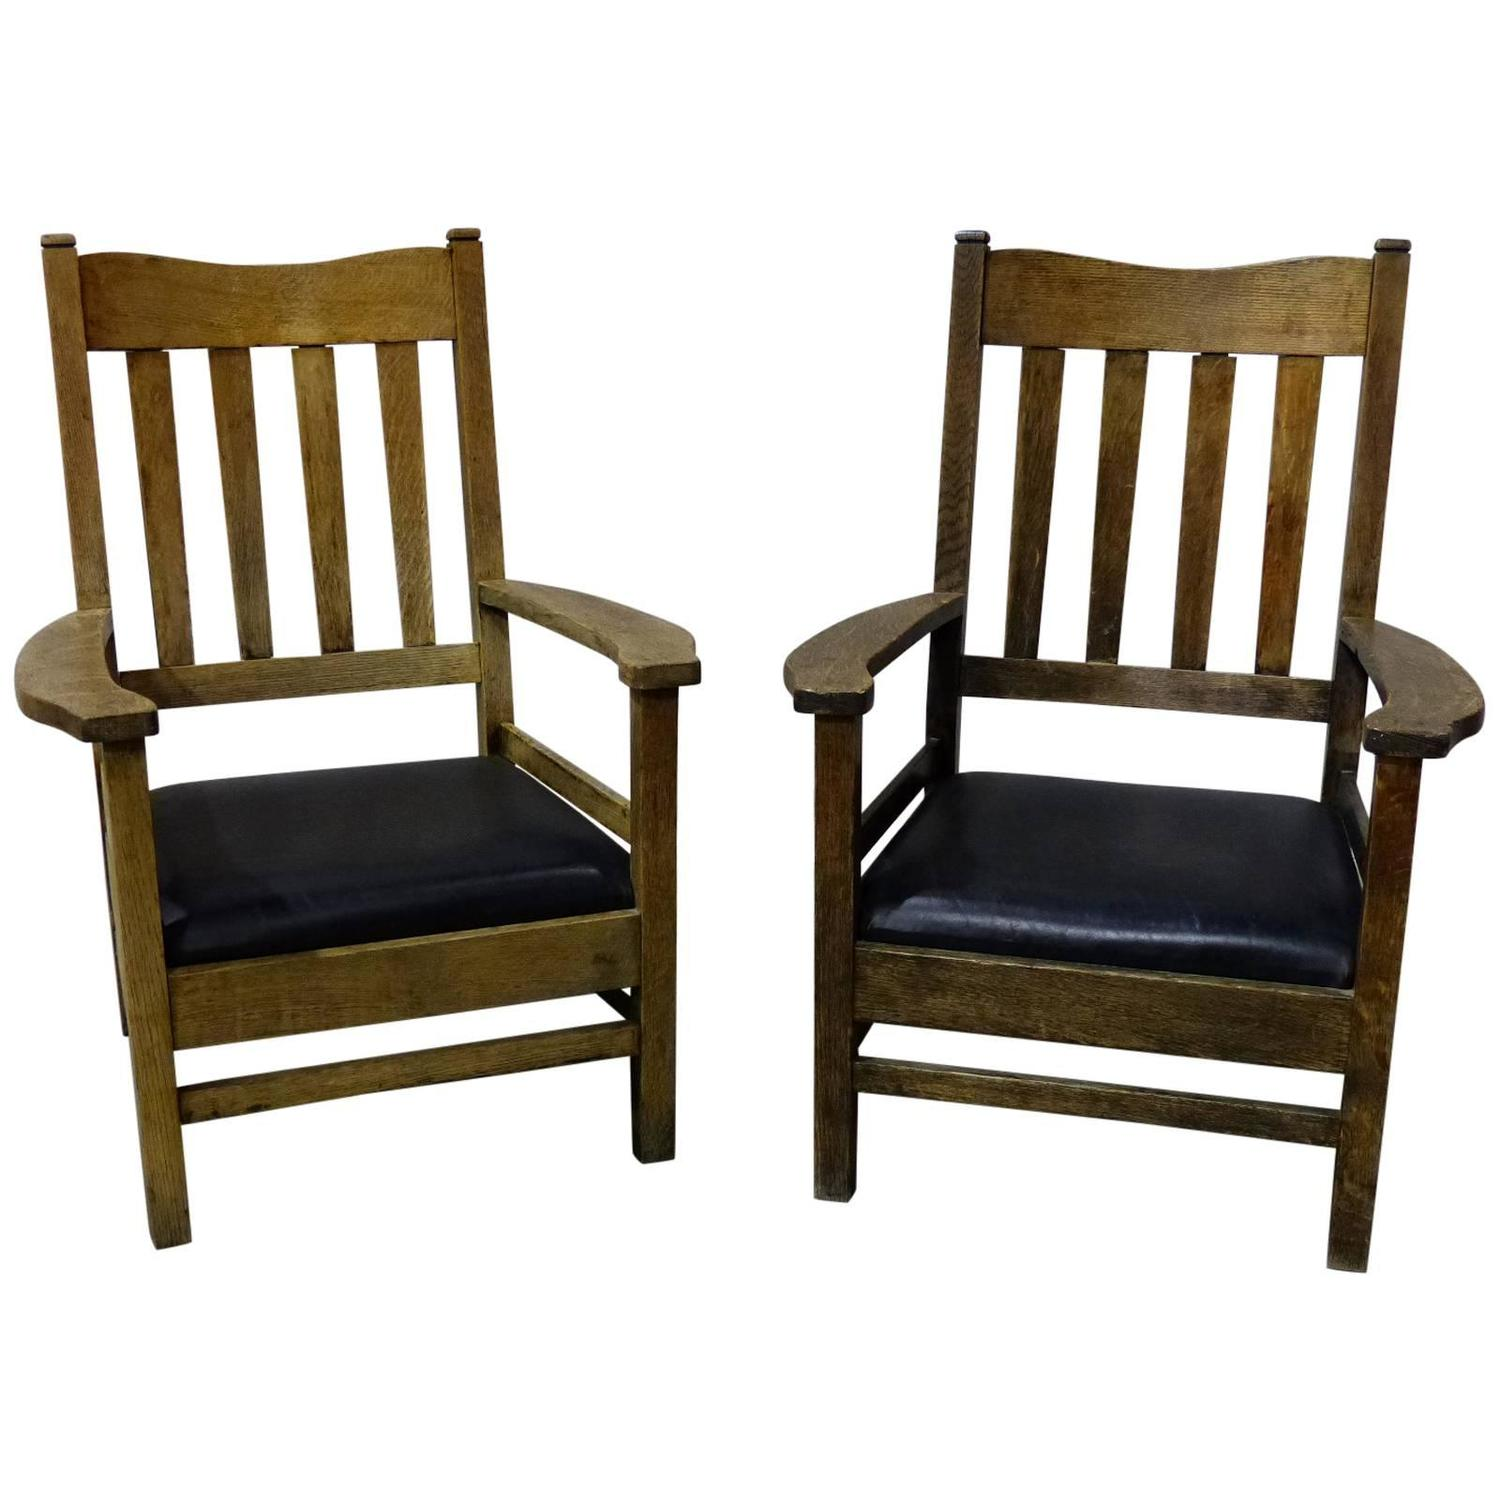 1920 Large Lodge Craftsman Style Lounge Chairs For Sale At